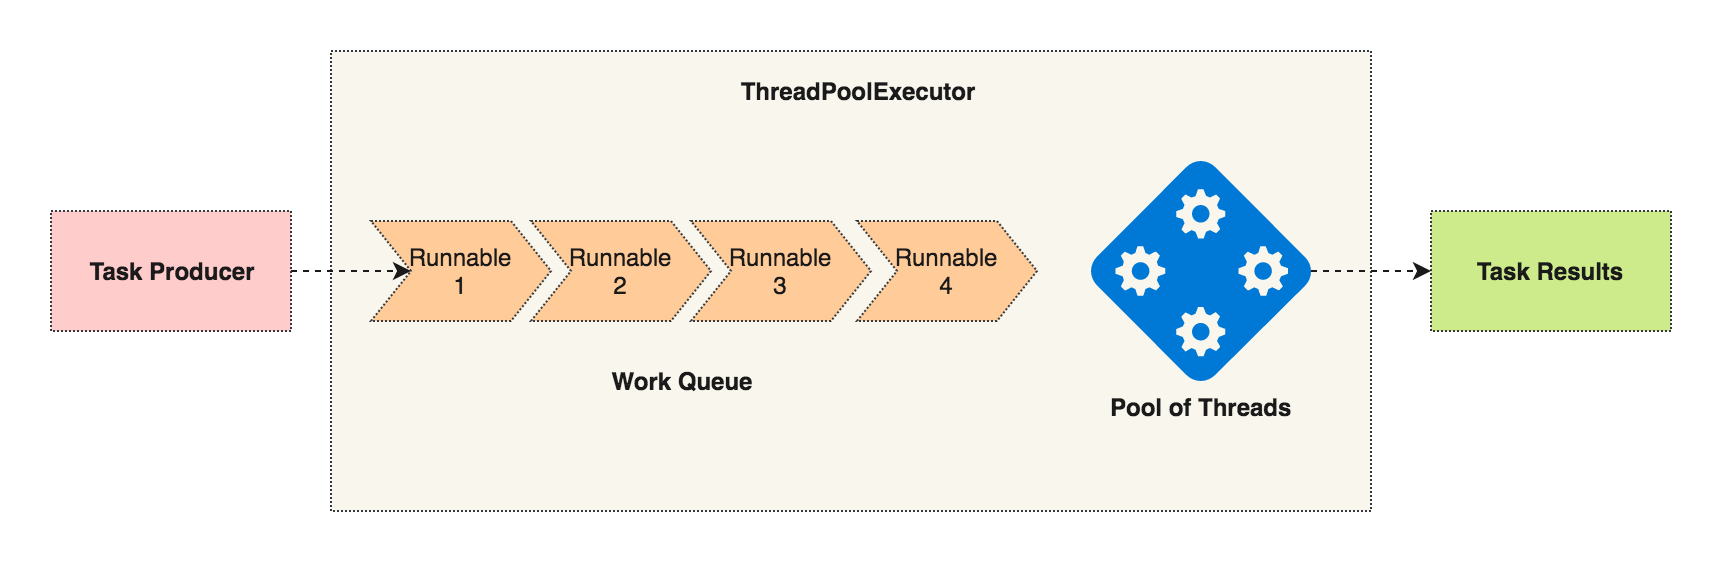 threadpool executor